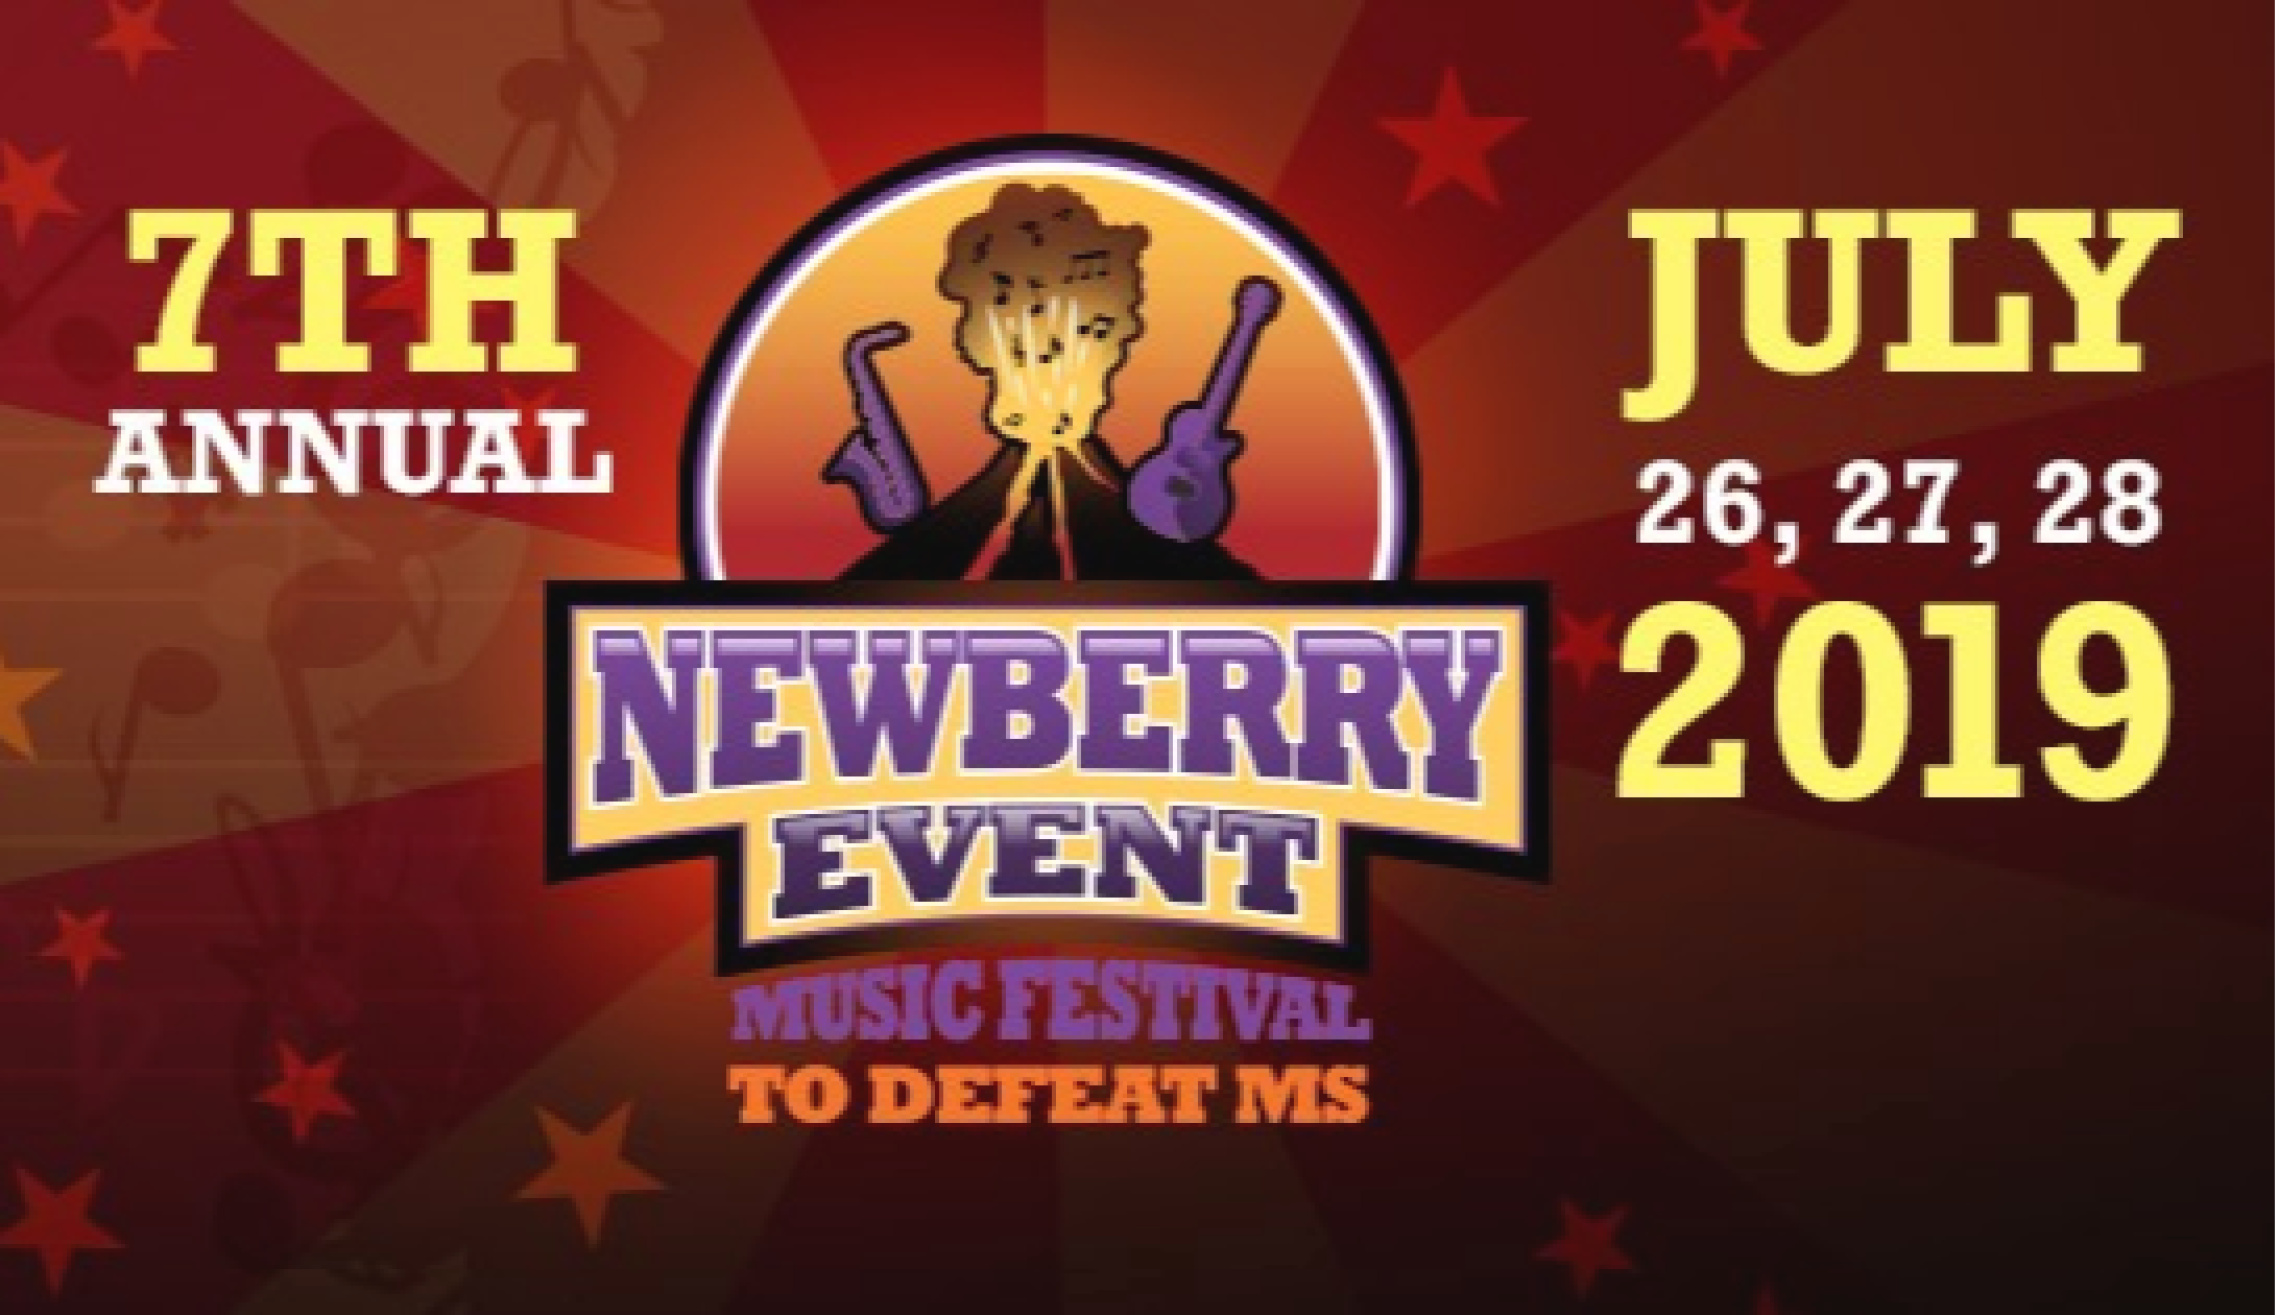 Newberry Event Music & Arts Festival to Defeat Multiple Sclerosis @ DiamondStone Guest Lodge